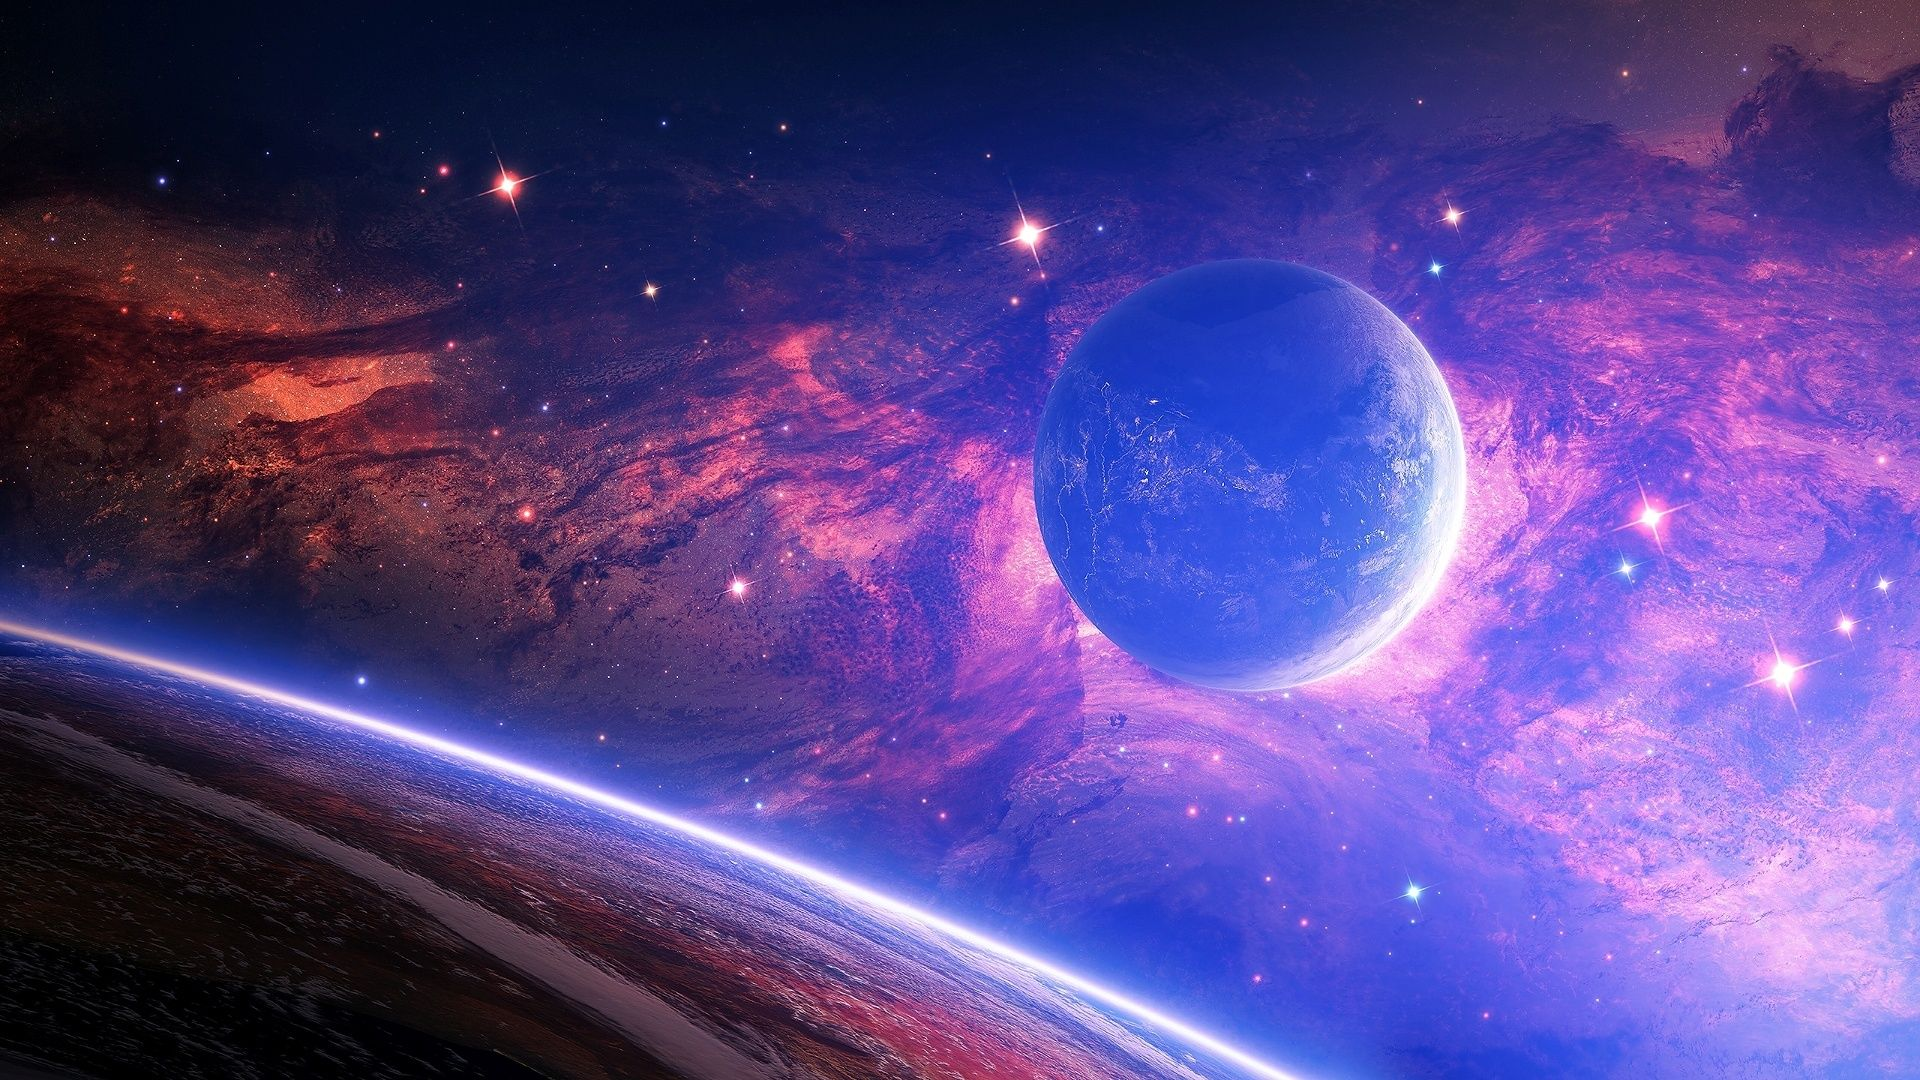 Cool Wallpaper High Resolution Space - ab92a945687f88d7219acf6ae4f20435  Trends_14367.jpg